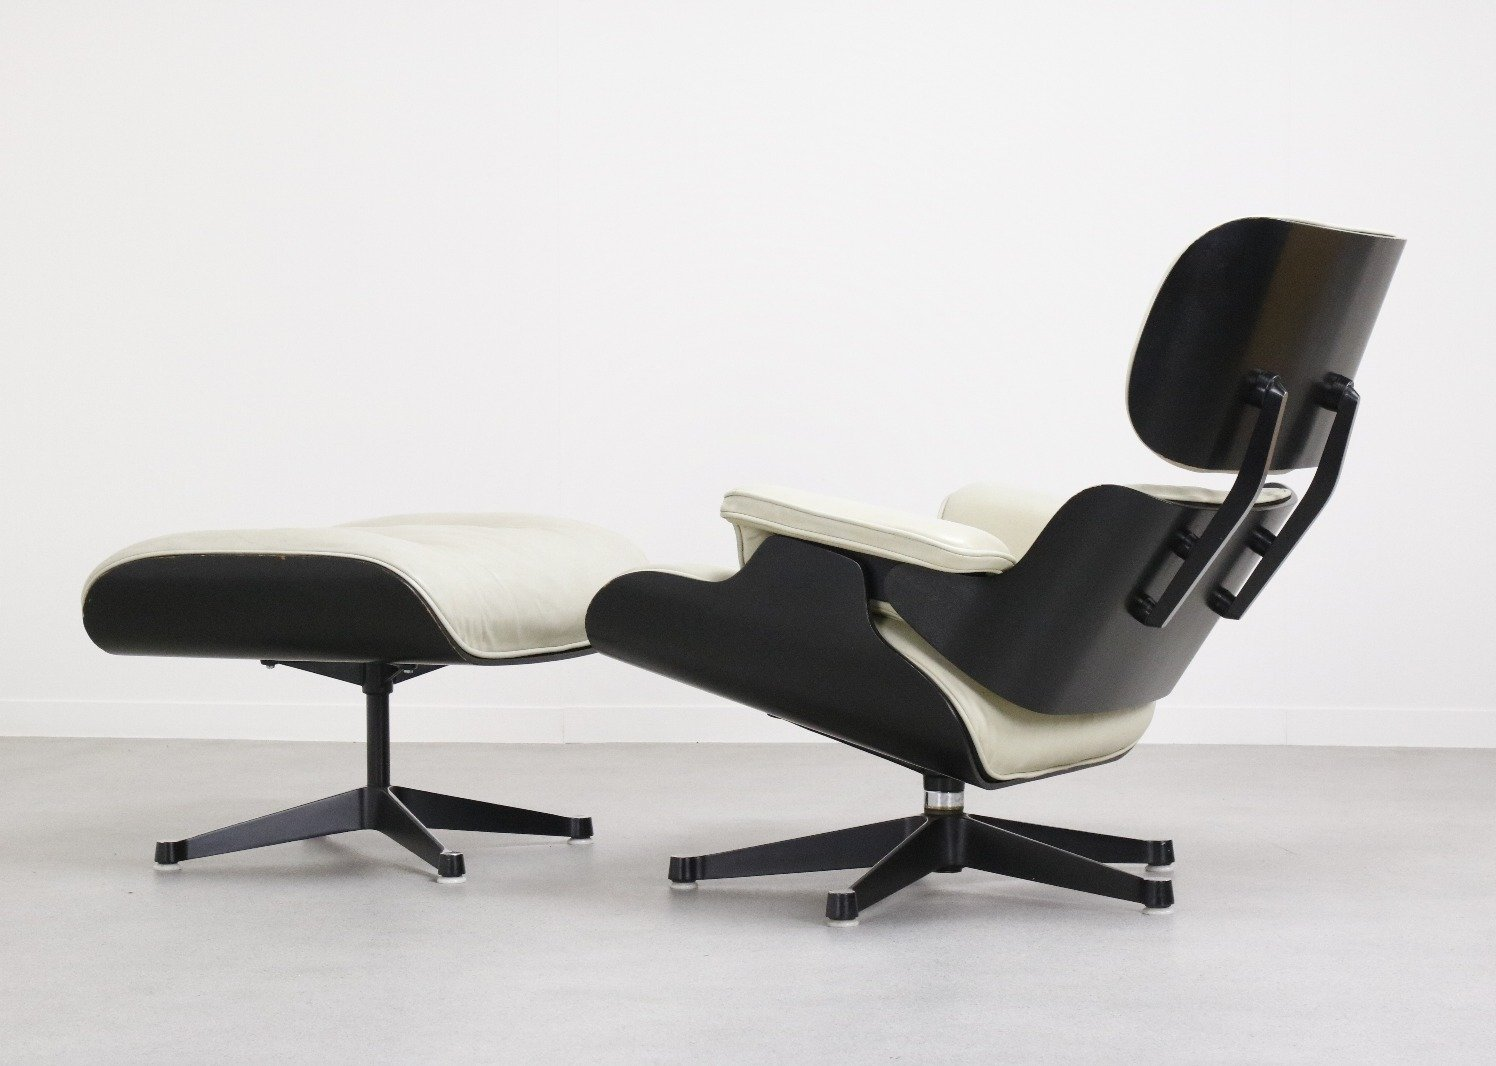 Vitra Chair Eames Rare Charles Ray Eames Lounge Chair By Fehlbaum Pre Vitra 1959